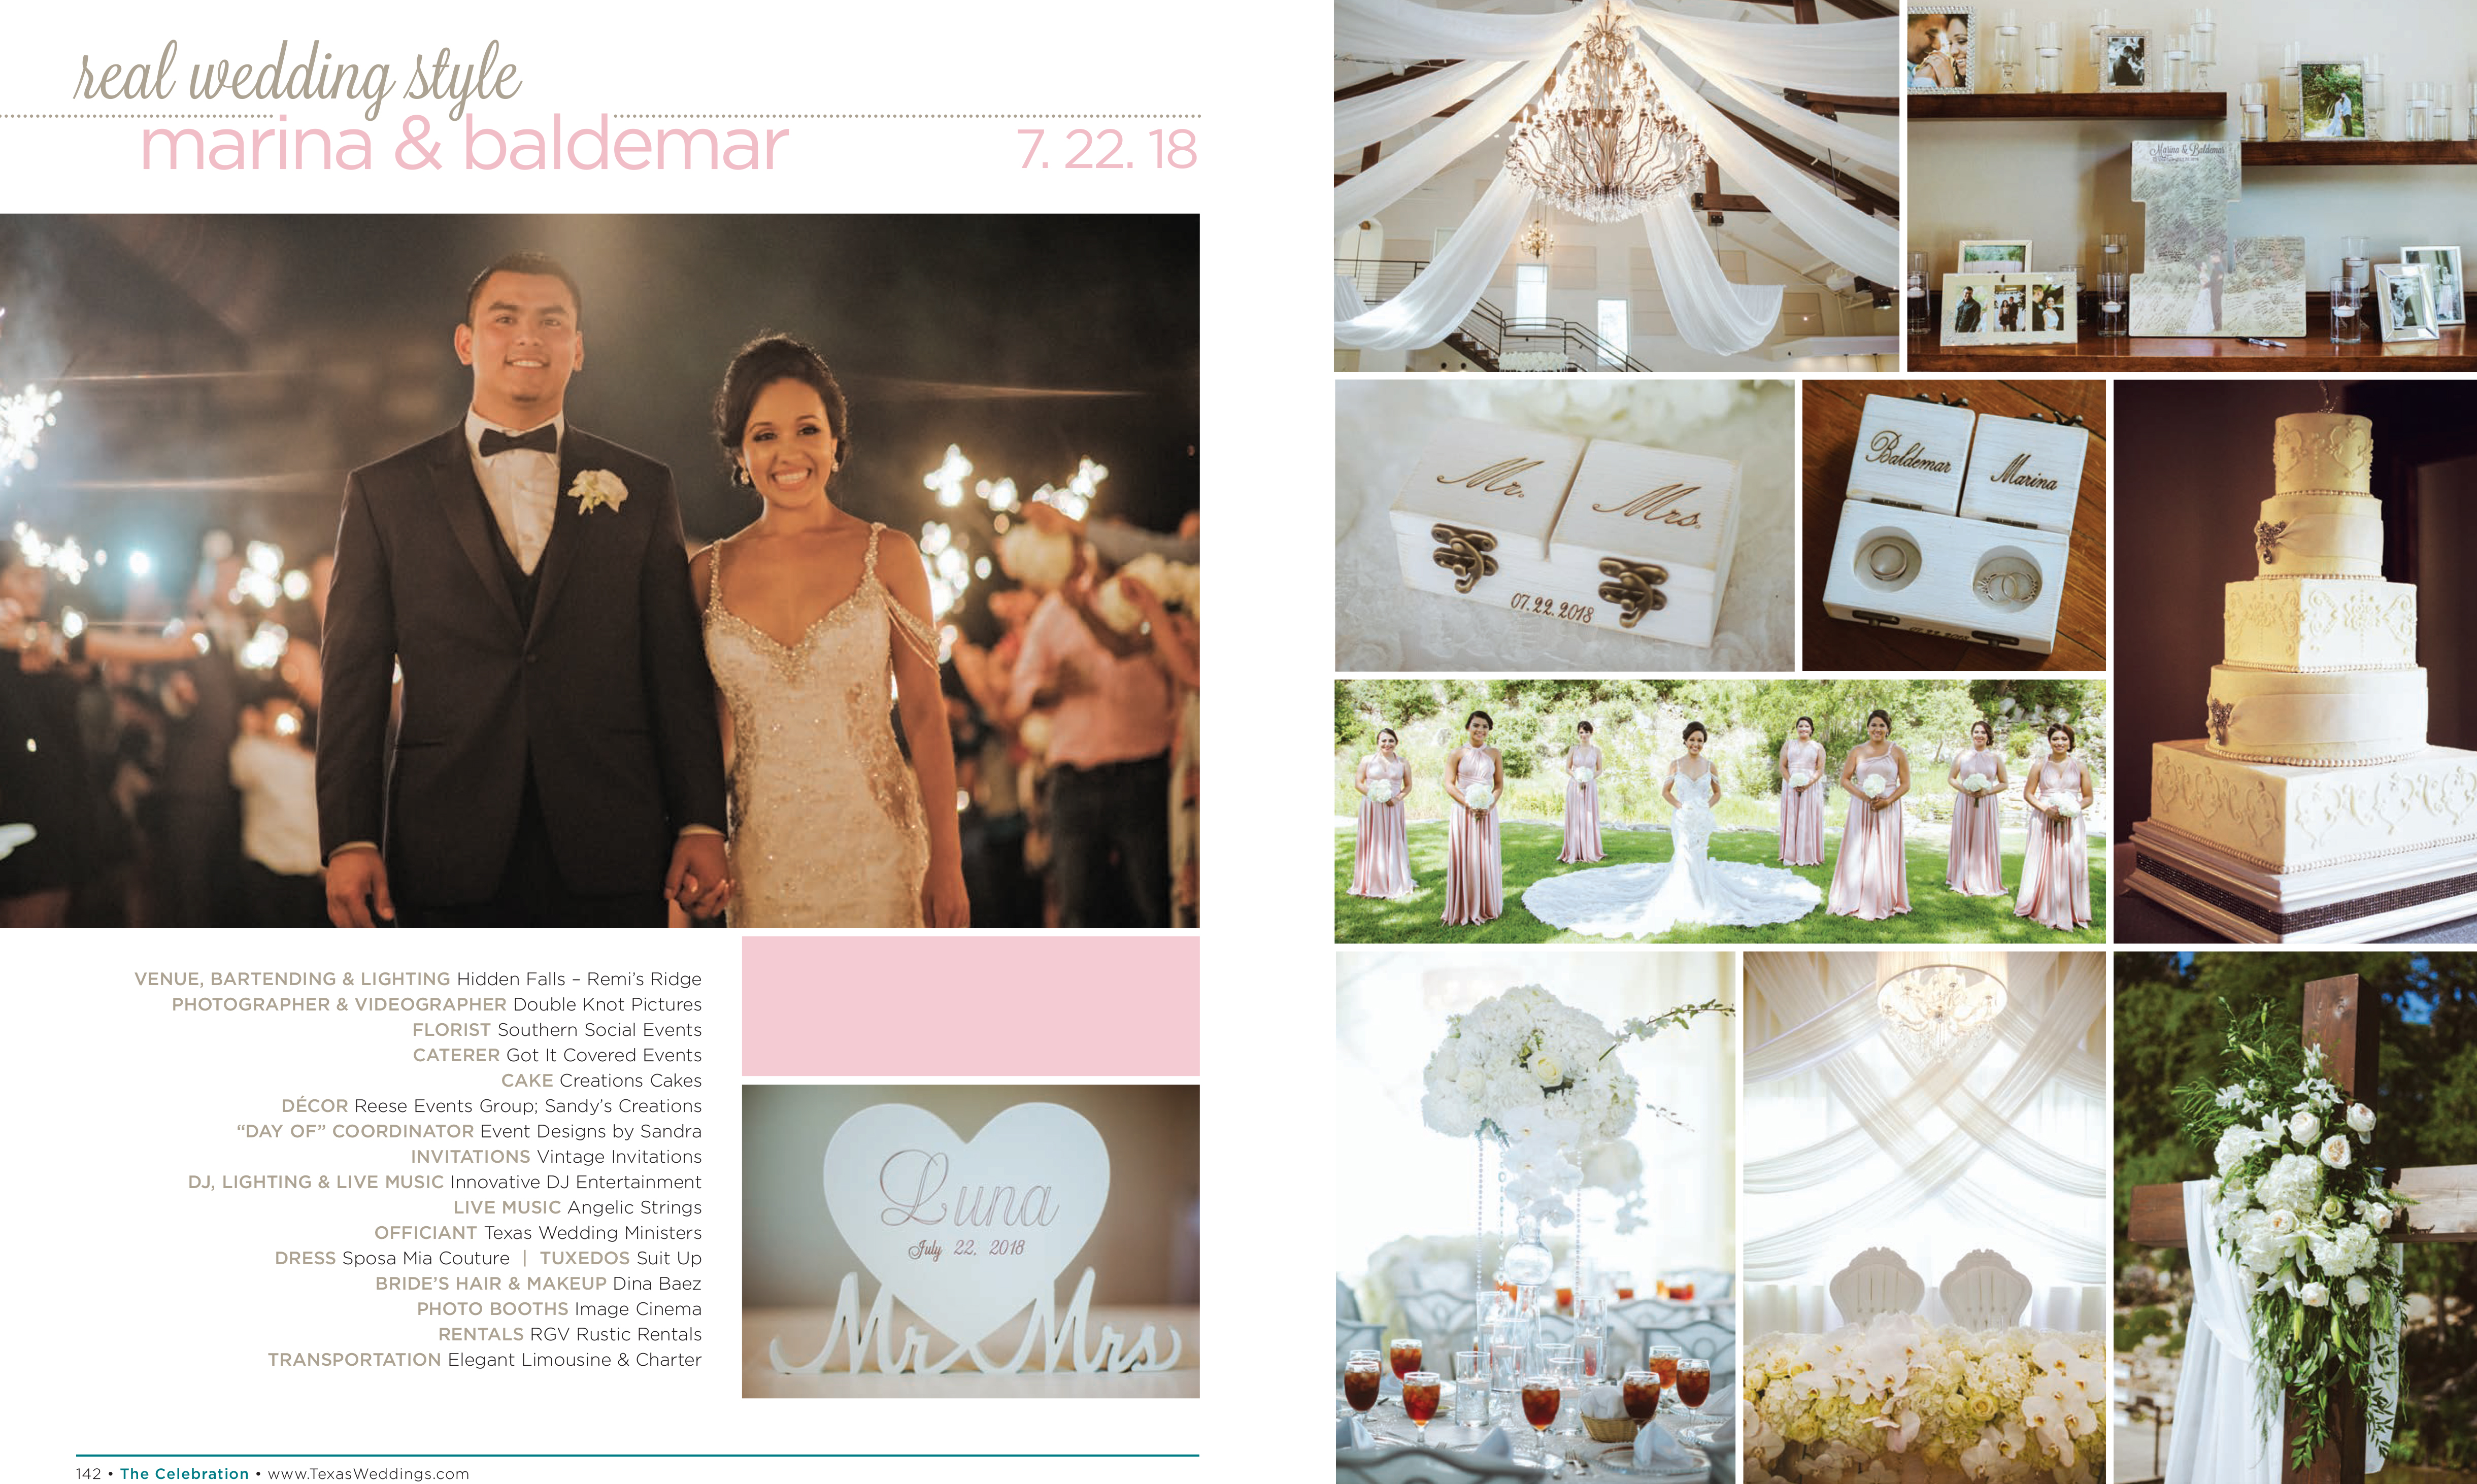 Marina & Baldemar in their Real Wedding Page in the Fall/Winter 2018 Texas Wedding Guide